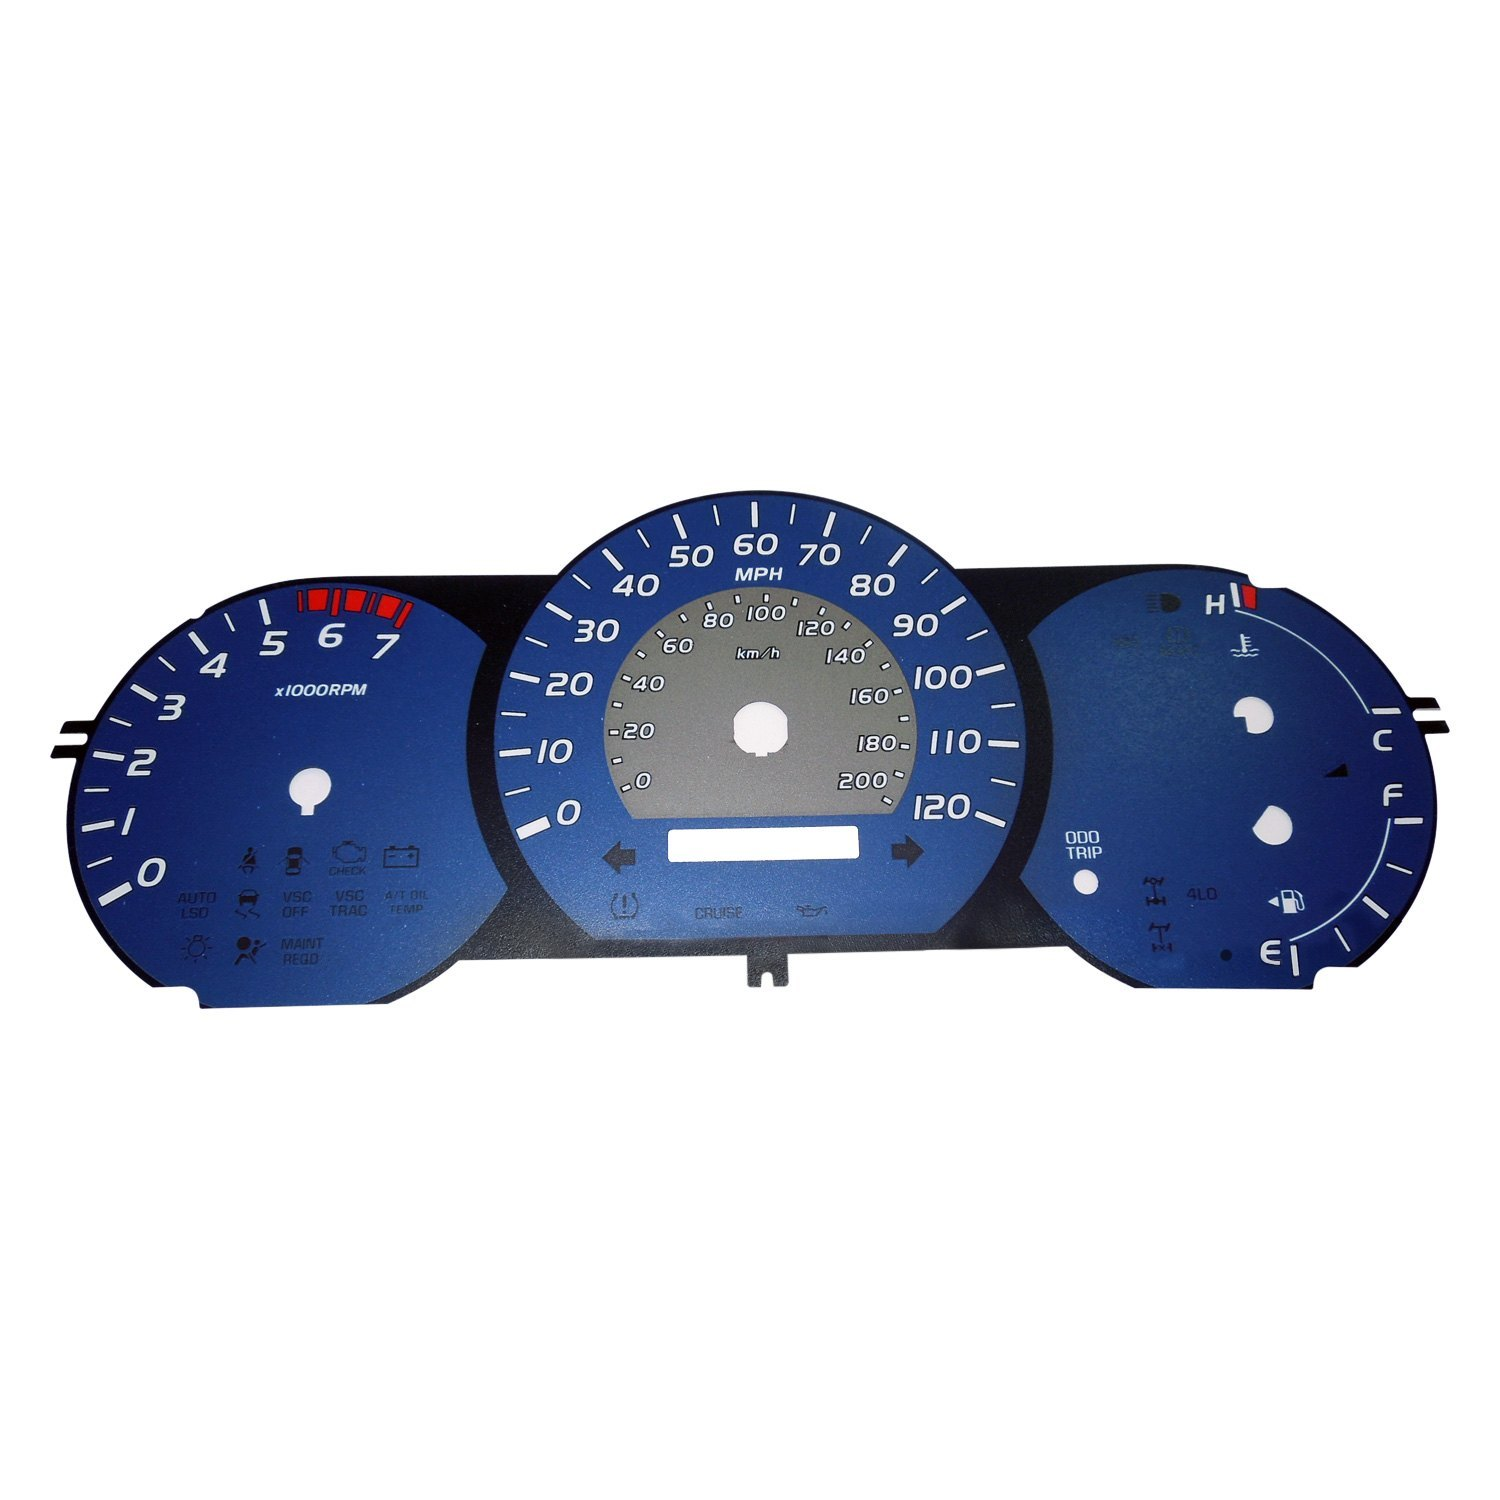 hight resolution of us speedo tac074 daytona edition gauge face kit with amber night lettering color blue